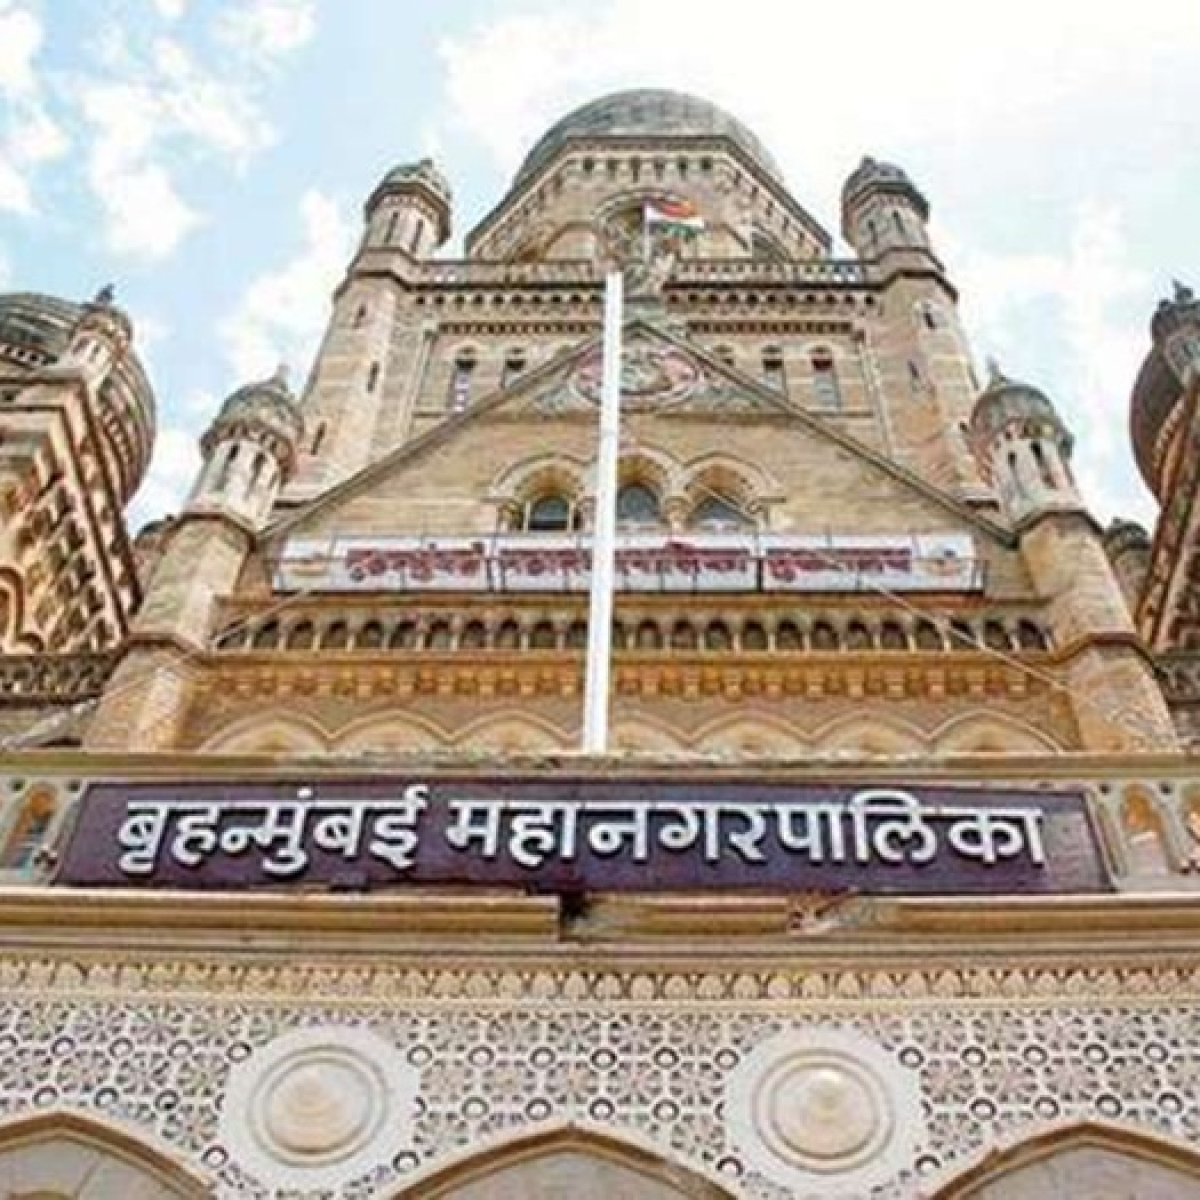 Coronavirus in Mumbai: 7 additional BMC commissioners deployed to inspect city; prevent spread of coronavirus